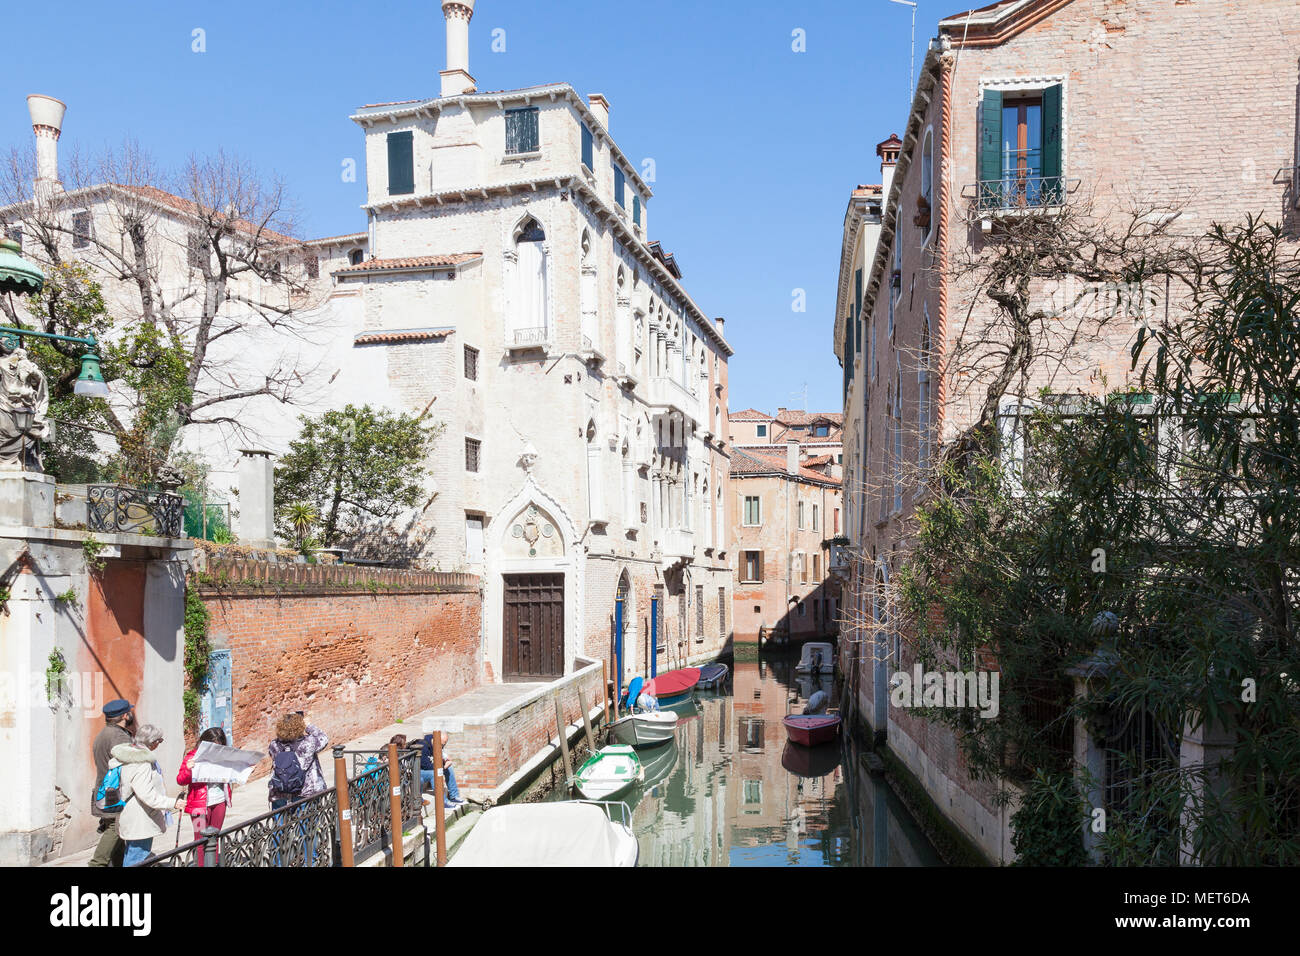 Palazzo Soranzo Van Axel, Fondamenta Van Axel, Rio della Panada, Cannaregio, Venice, Veneto, Italy, the best preserved Gothic palace in Venice. Touris Stock Photo